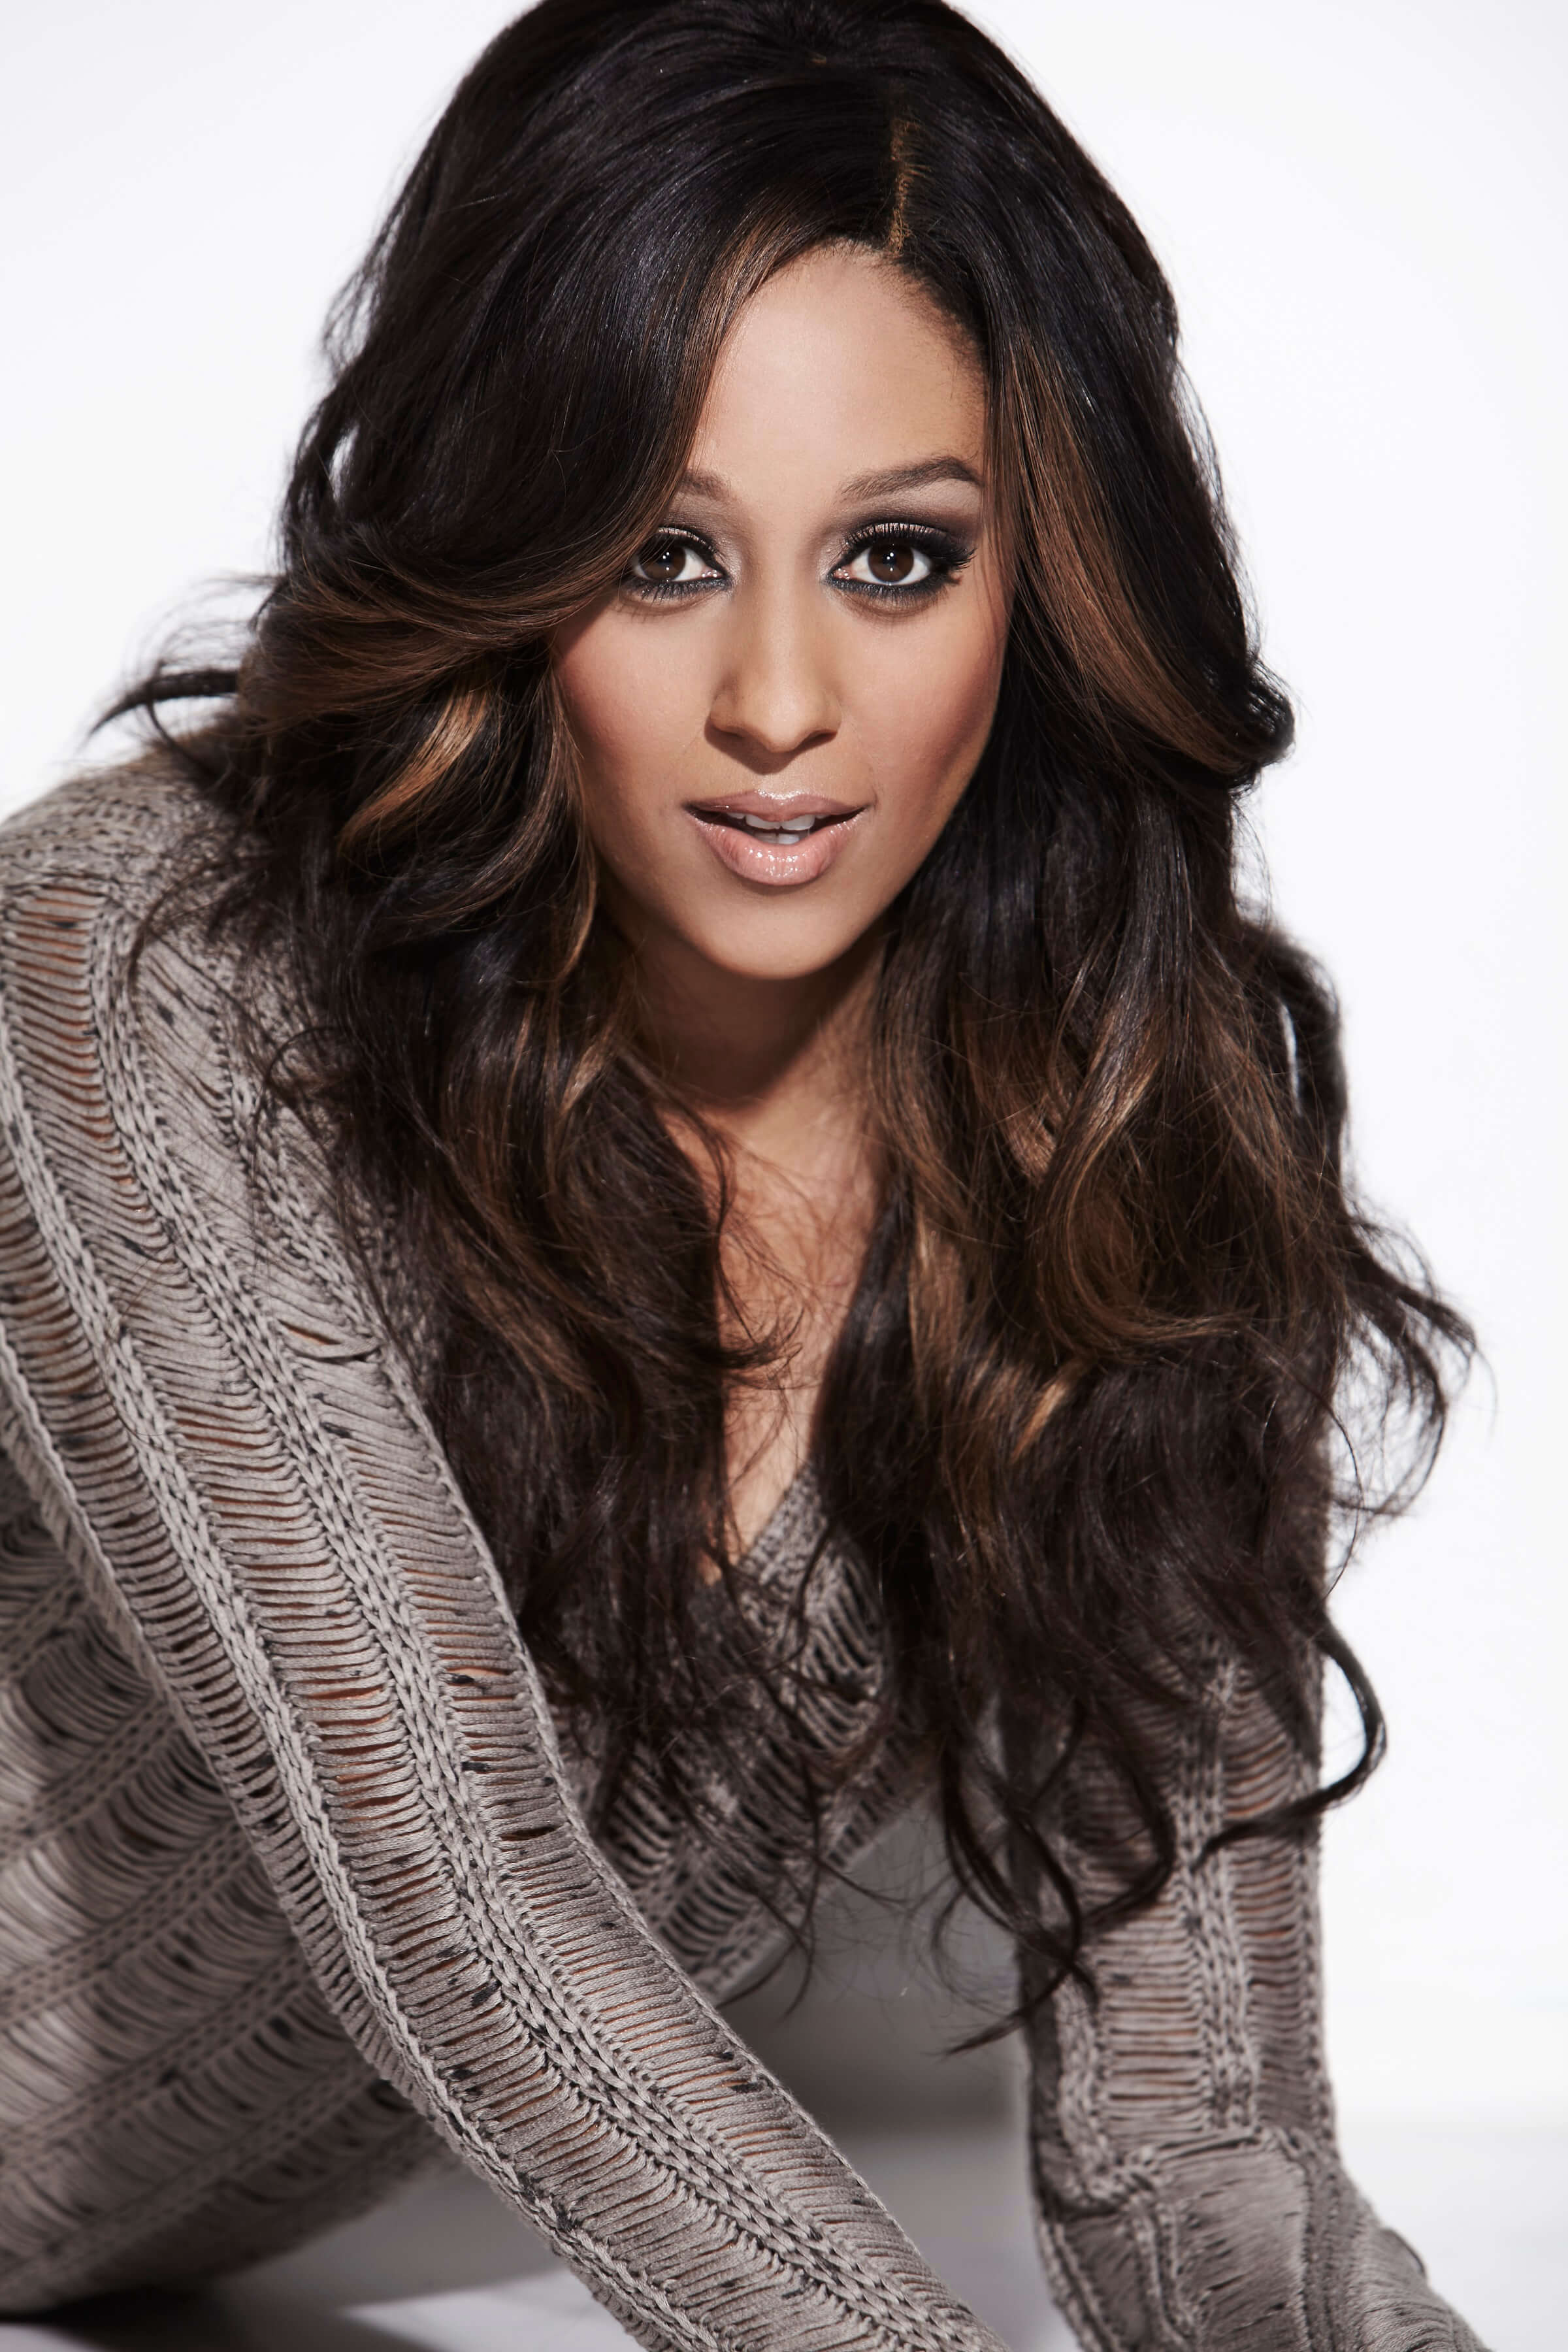 Tia Mowry S Quick Fix Launches On Youtube Programming